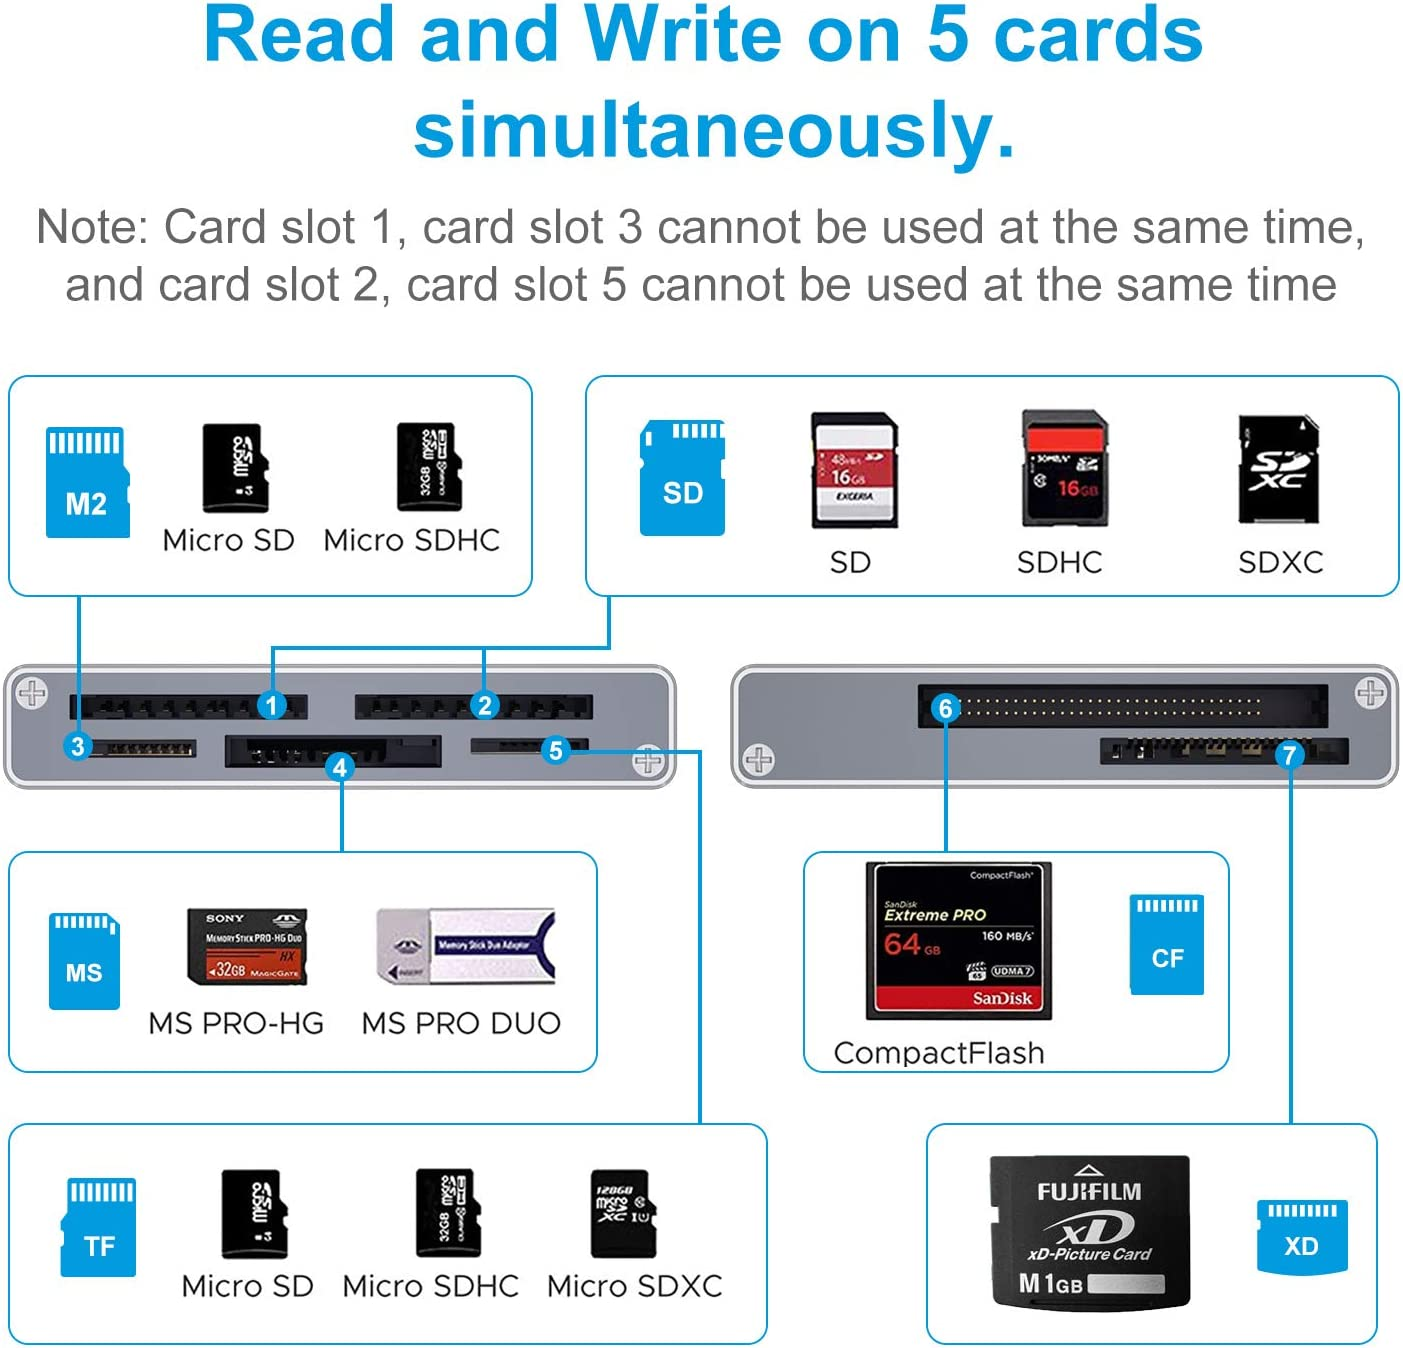 7-IN-1 Camera Memory Card Reader for Micro SD//TF//SD//Compact Flash//MS//XD//MMC Micro SD Card Reader for Computer,PC ceuao SD Card Reader USB 3.0 Micro SD Adapter with 27in Cable